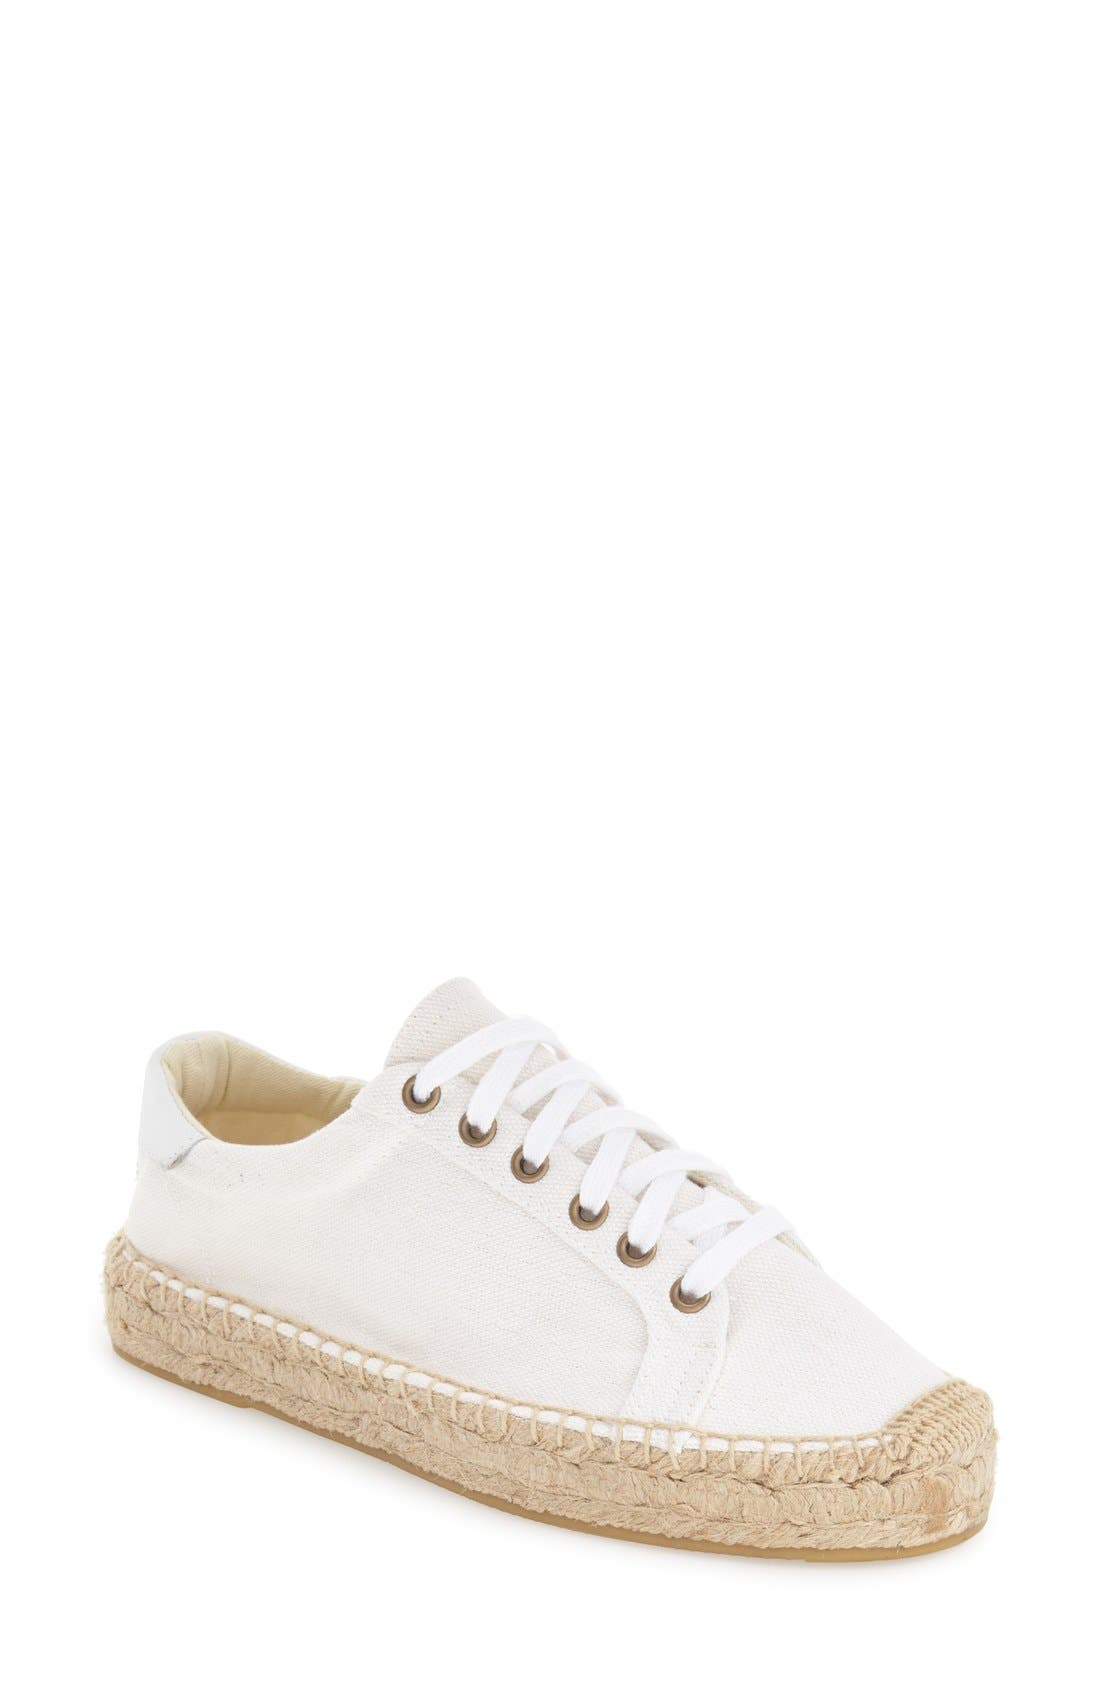 Espadrille Platform Sneaker,                             Main thumbnail 1, color,                             Bright White Canvas